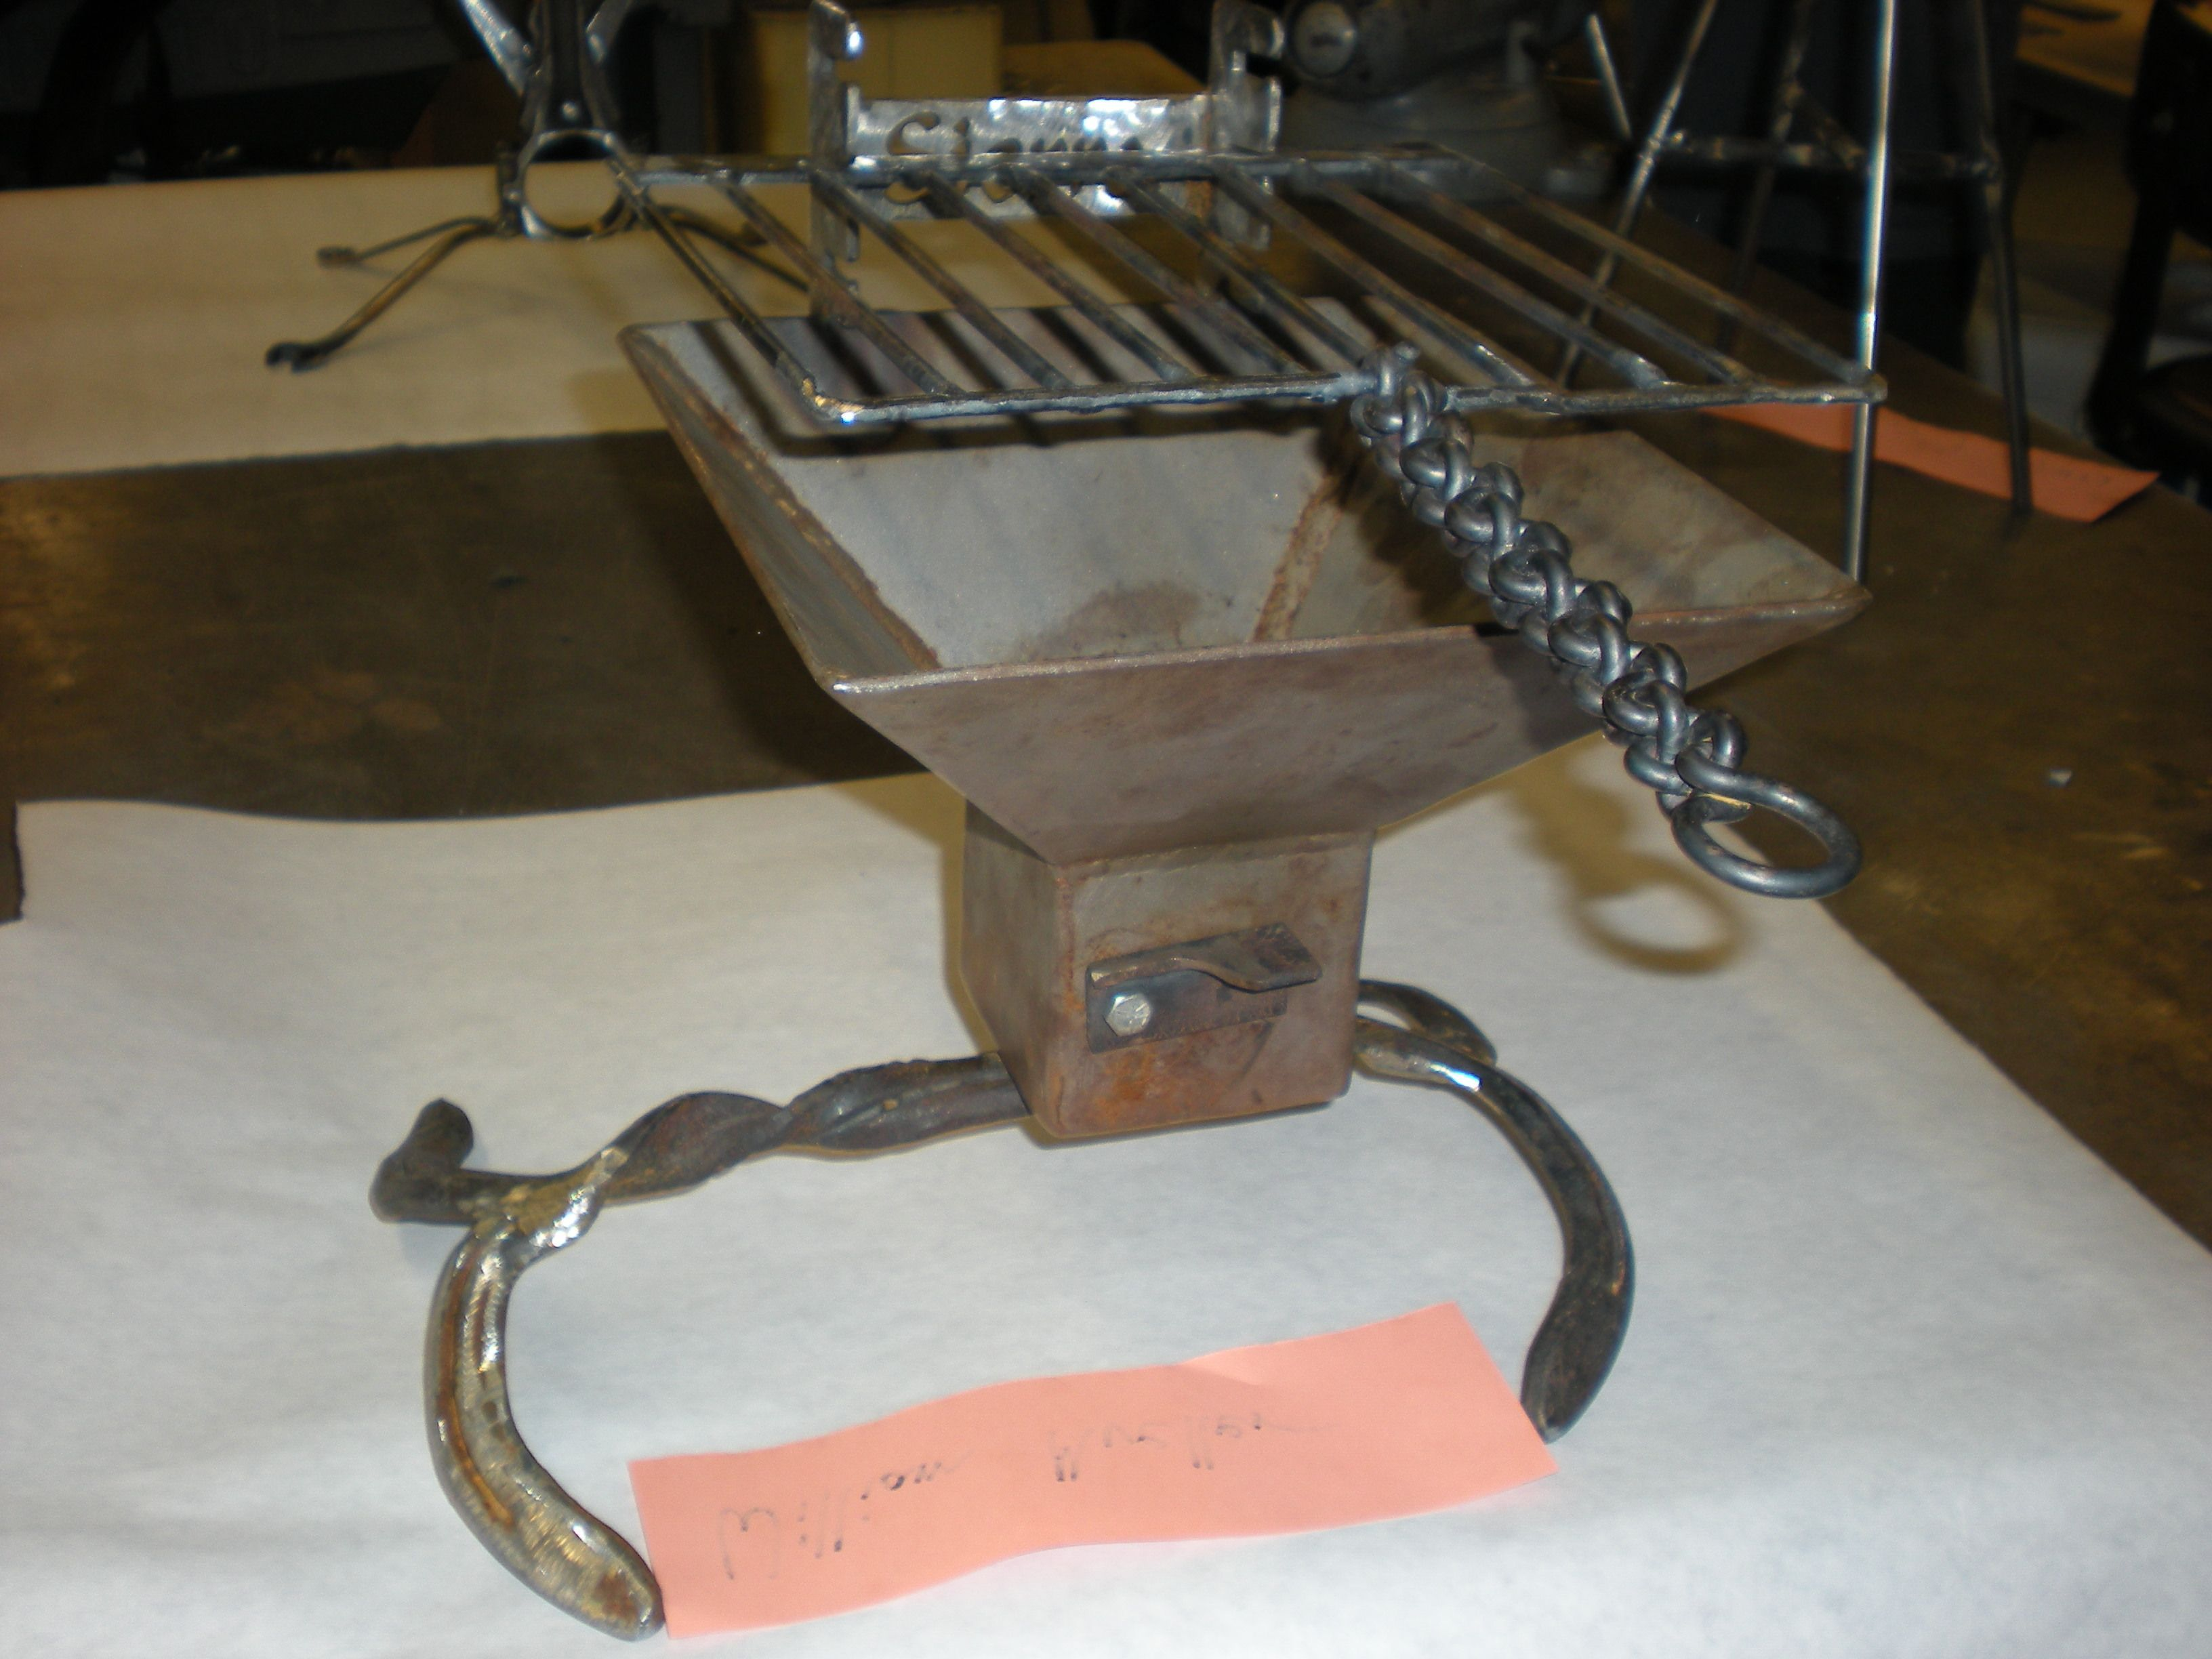 Welding Projects For High School Google Search